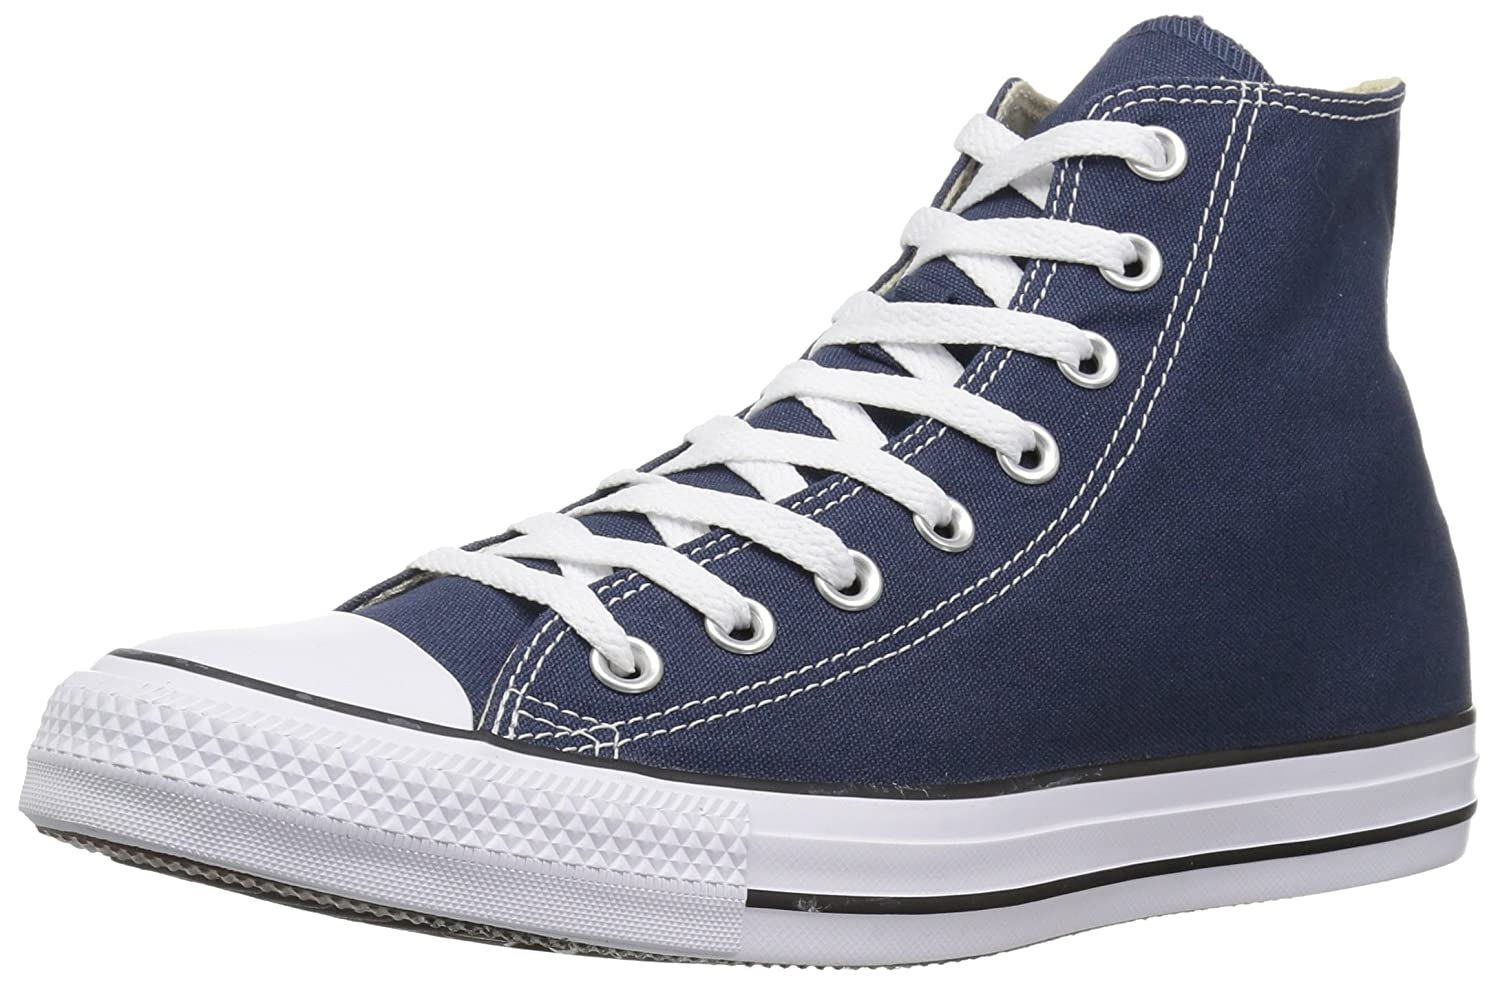 Converse AS Hi Can charcoal 1J793 Unisex-Erwachsene Sneaker  375|Blau (Navy Blue)